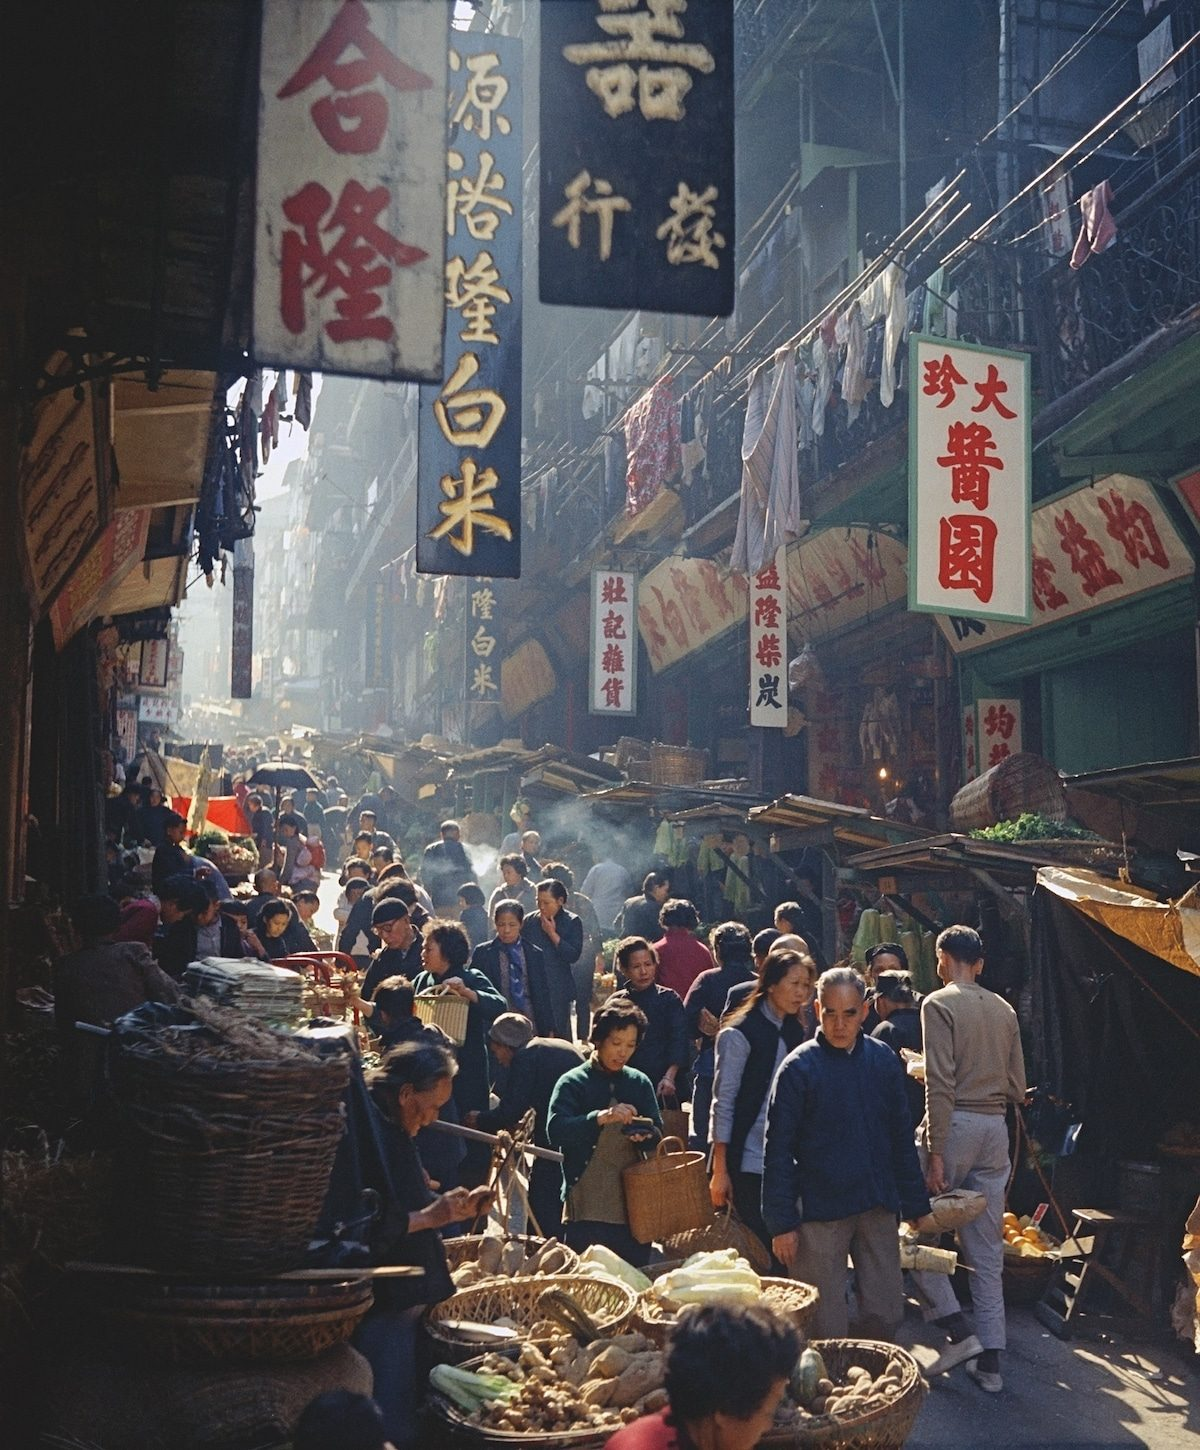 Sublime Street Photographs of Hong Kong in the 1950s and 1960s